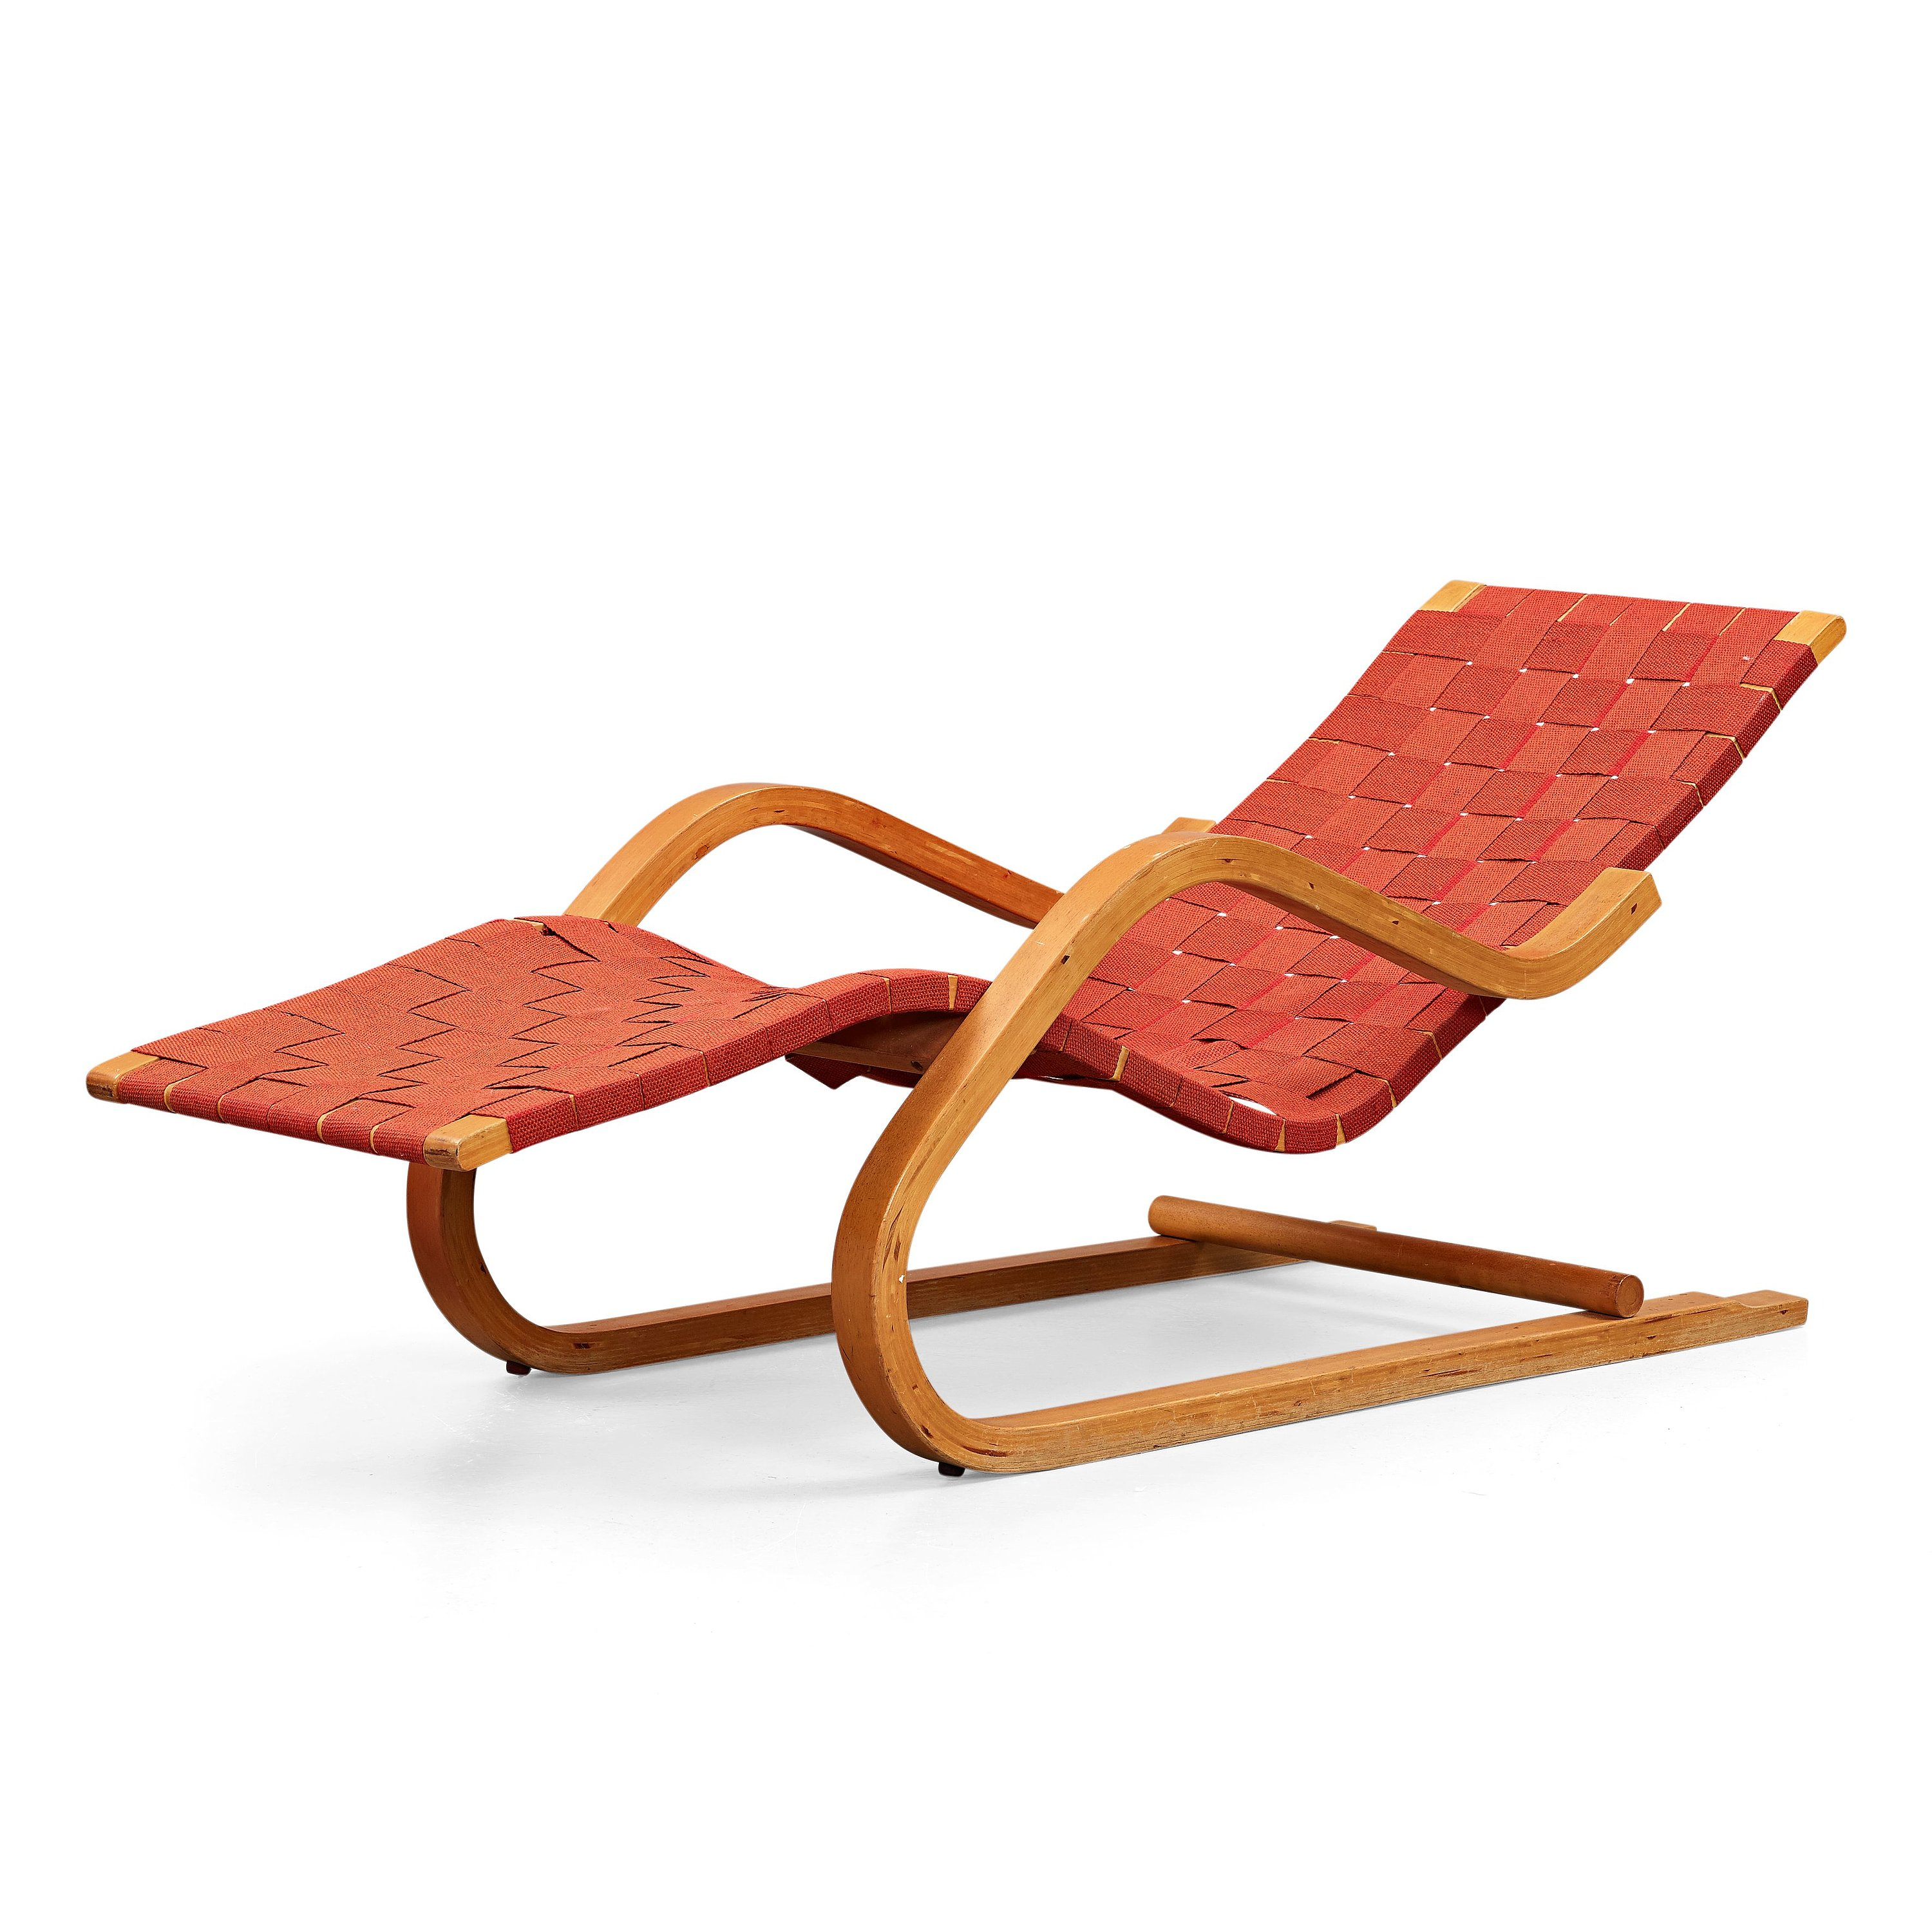 ALVAR AALTO A Lounge Chair Model 39 Manufactured By Aalto Design In Hedemora Sweden 1945 55